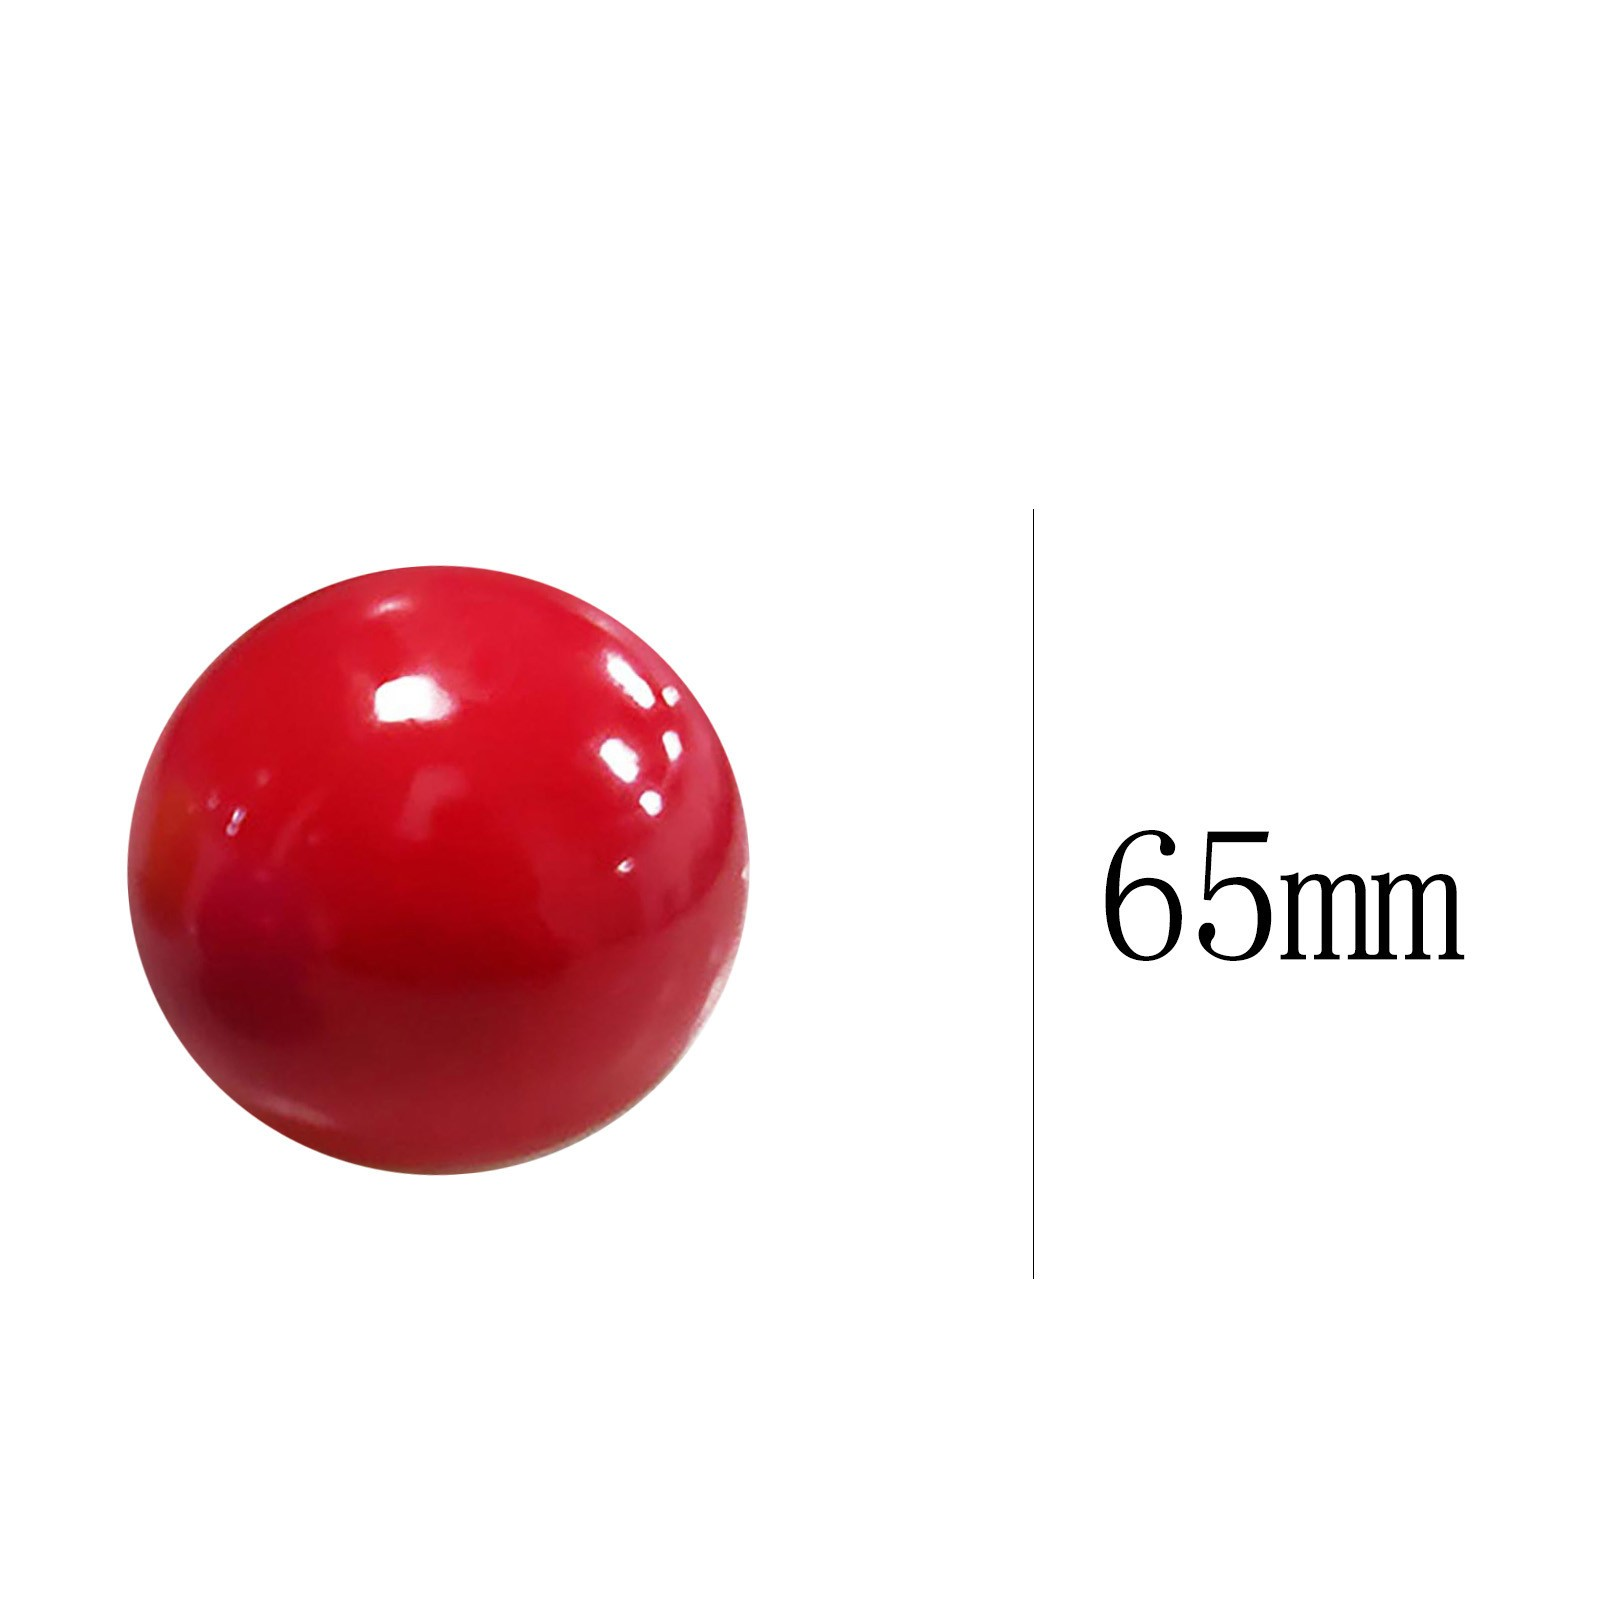 Relief-Toy Tossing-Ball Sticky-Target-Ball-Stress Ceiling Gift Adults Kids Novelty Hot img3